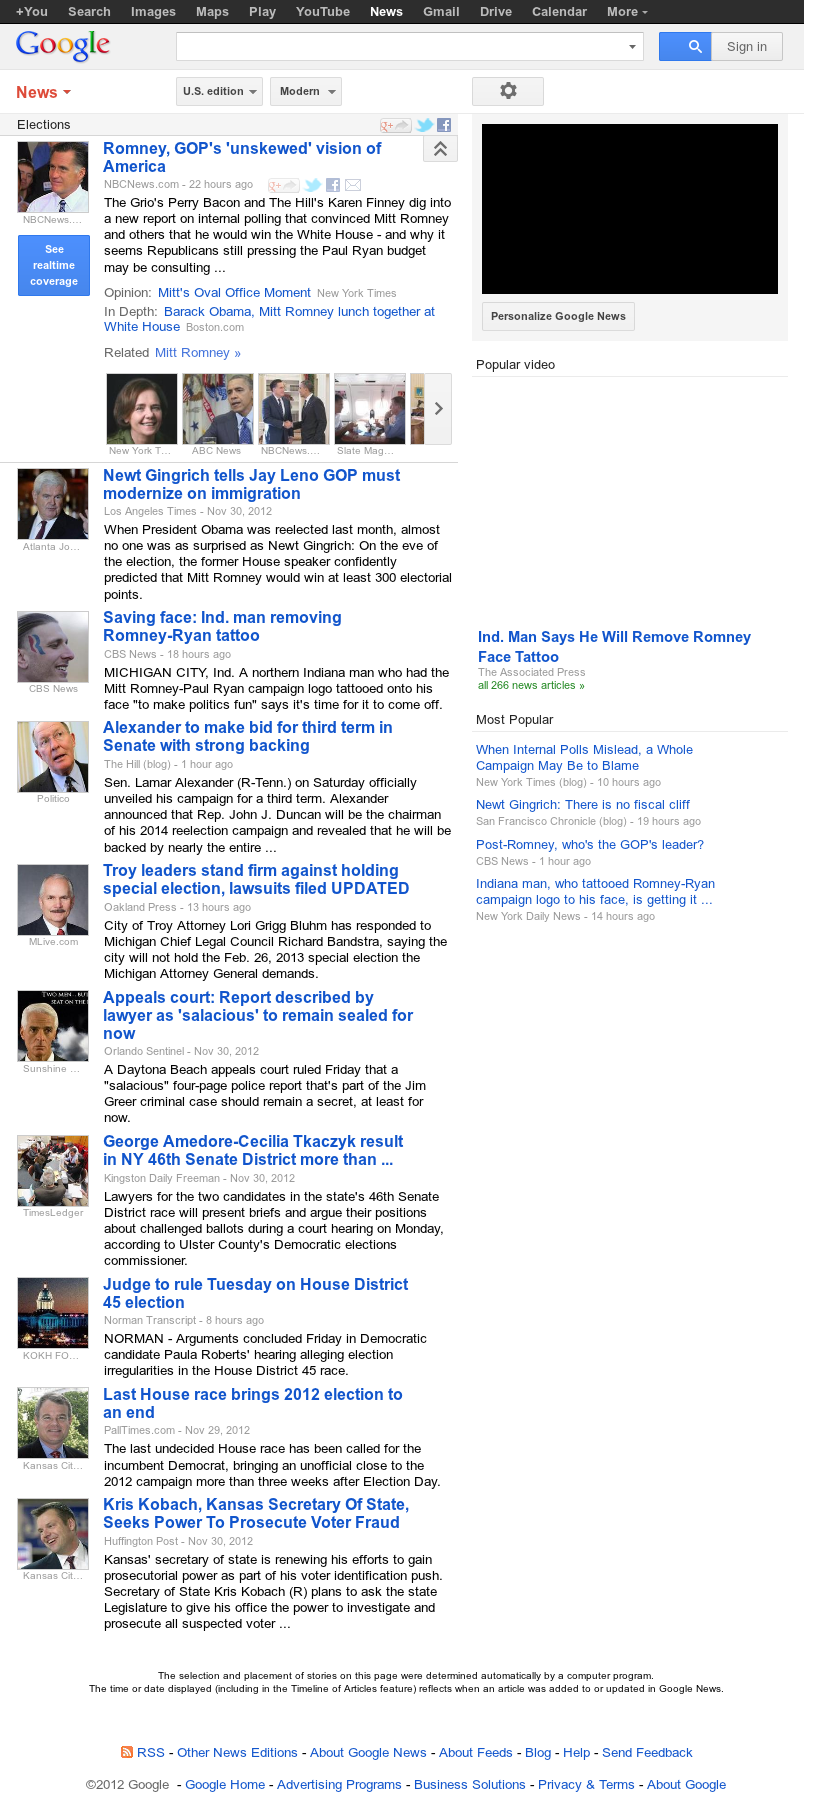 Google News: Elections at Saturday Dec. 1, 2012, 9:11 p.m. UTC